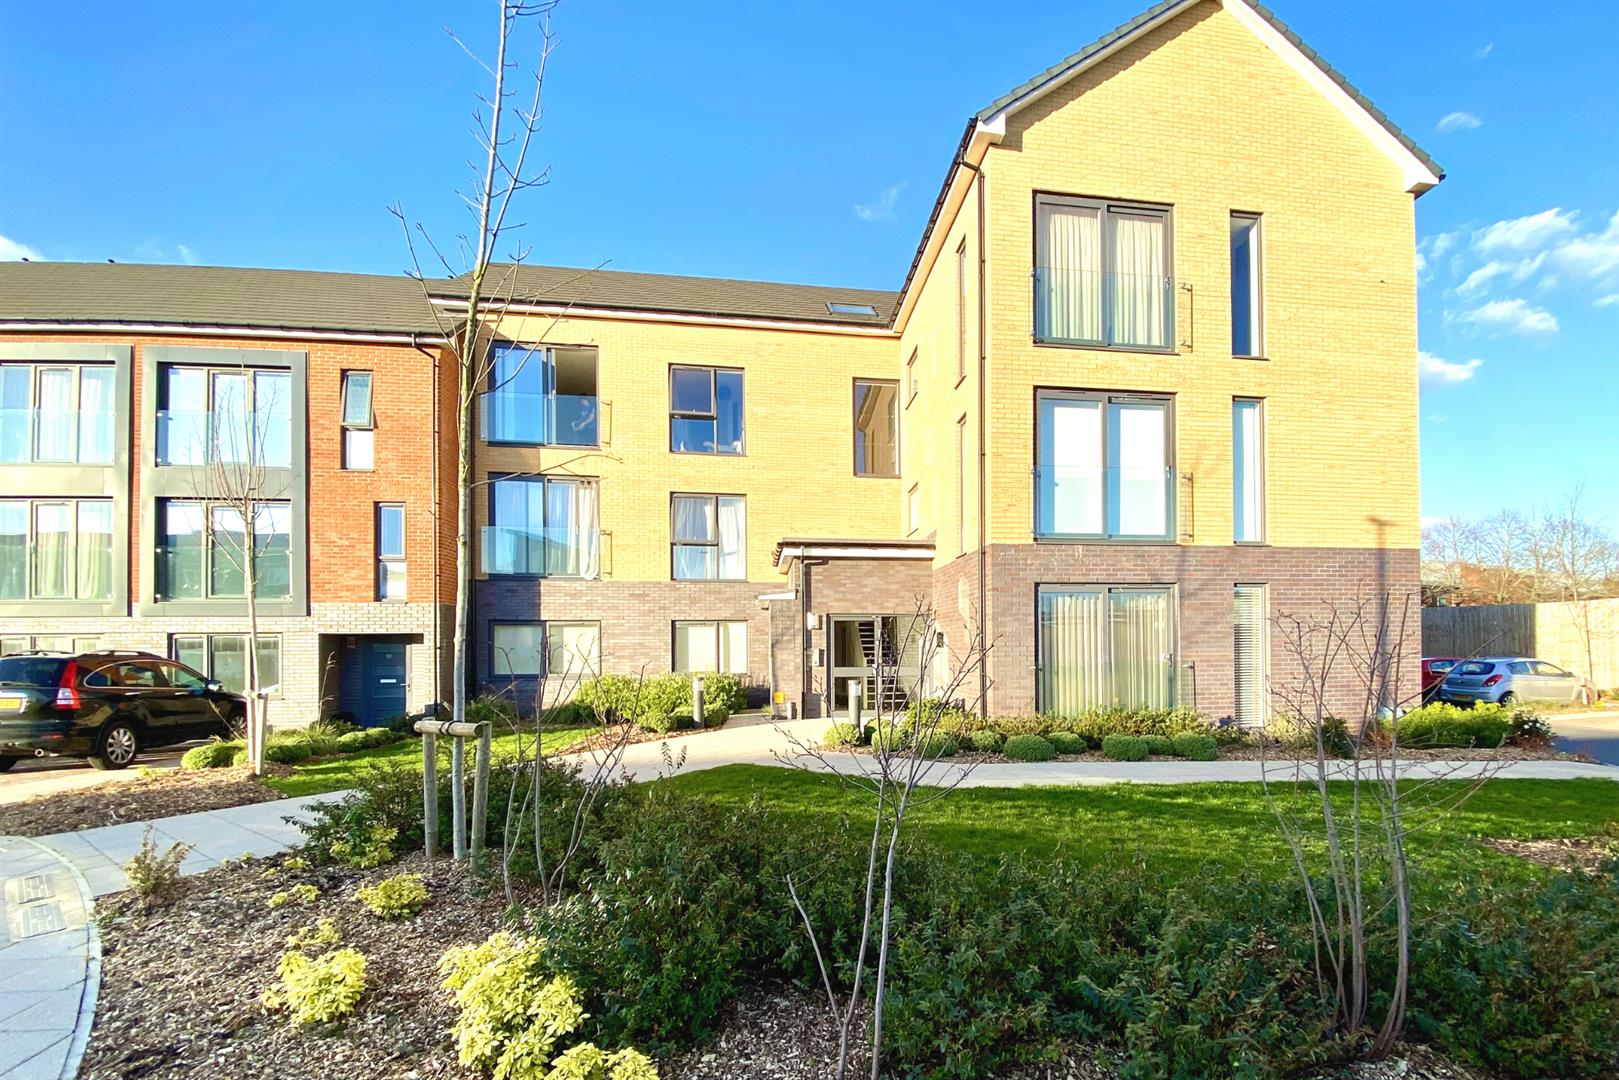 2 bed flat for sale, RG2